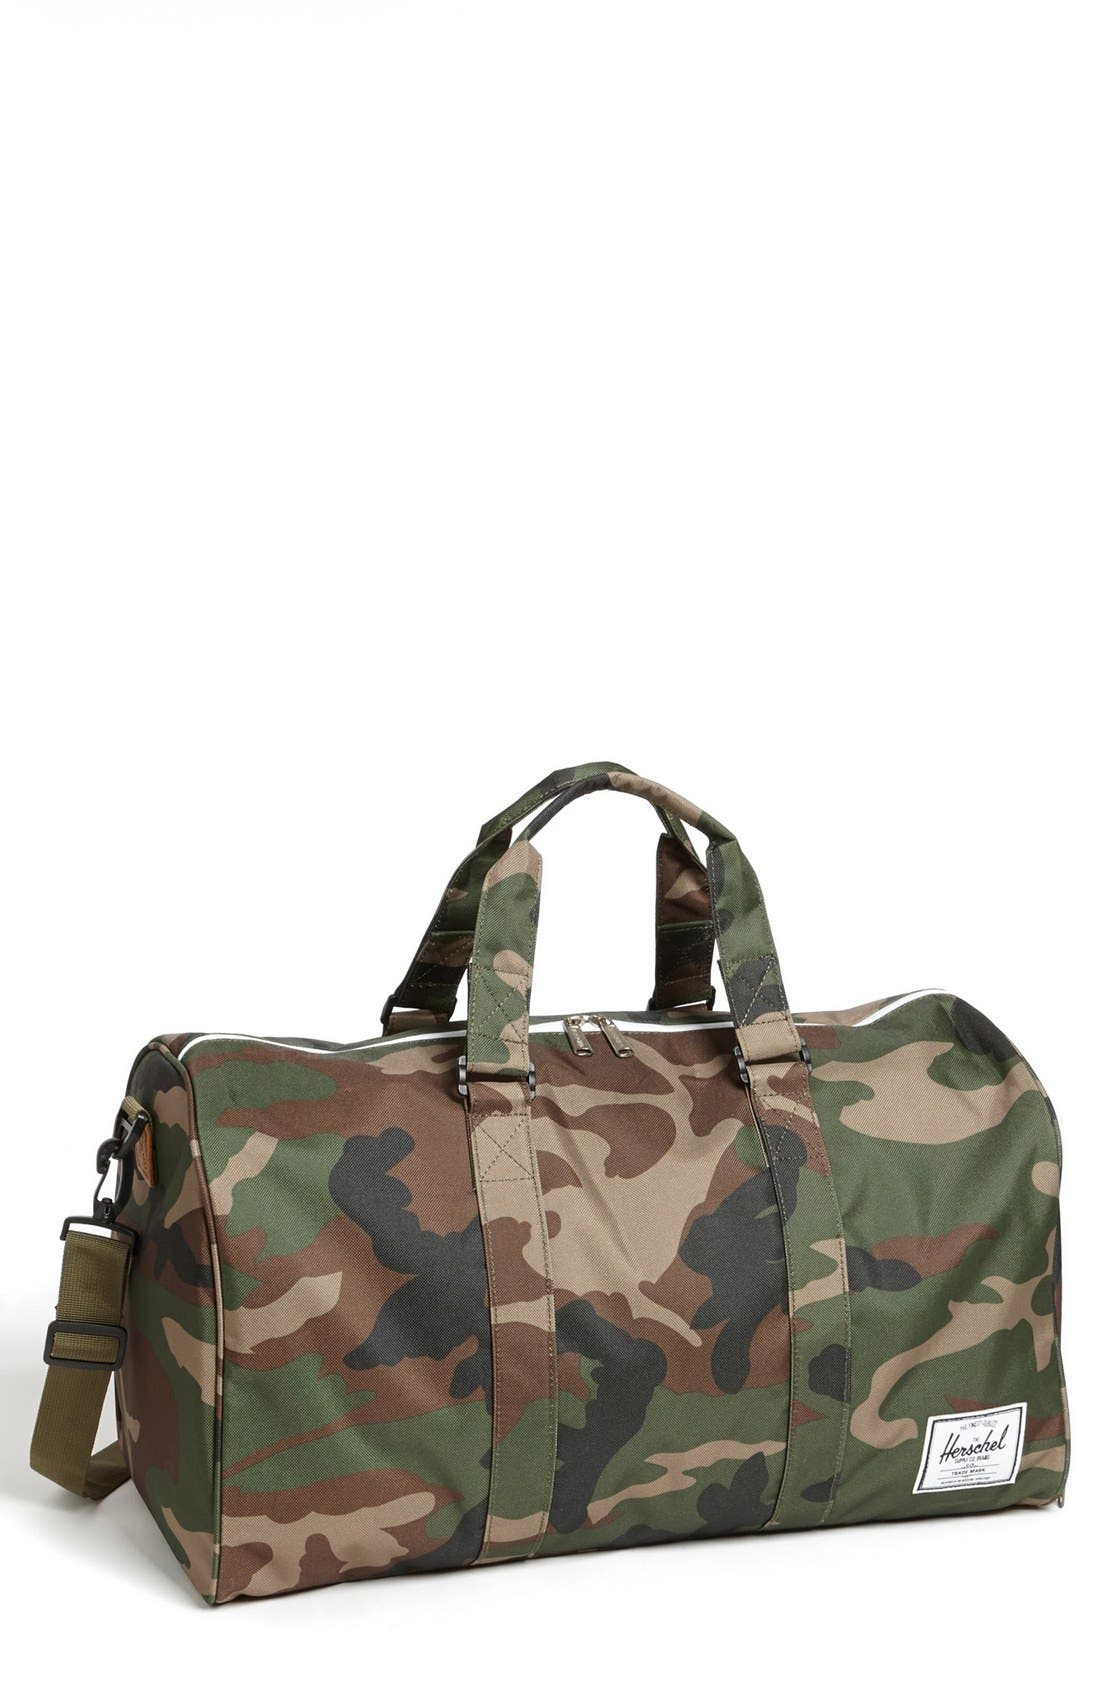 'Novel' Duffel Bag,                         Main,                         color, Woodland Camo